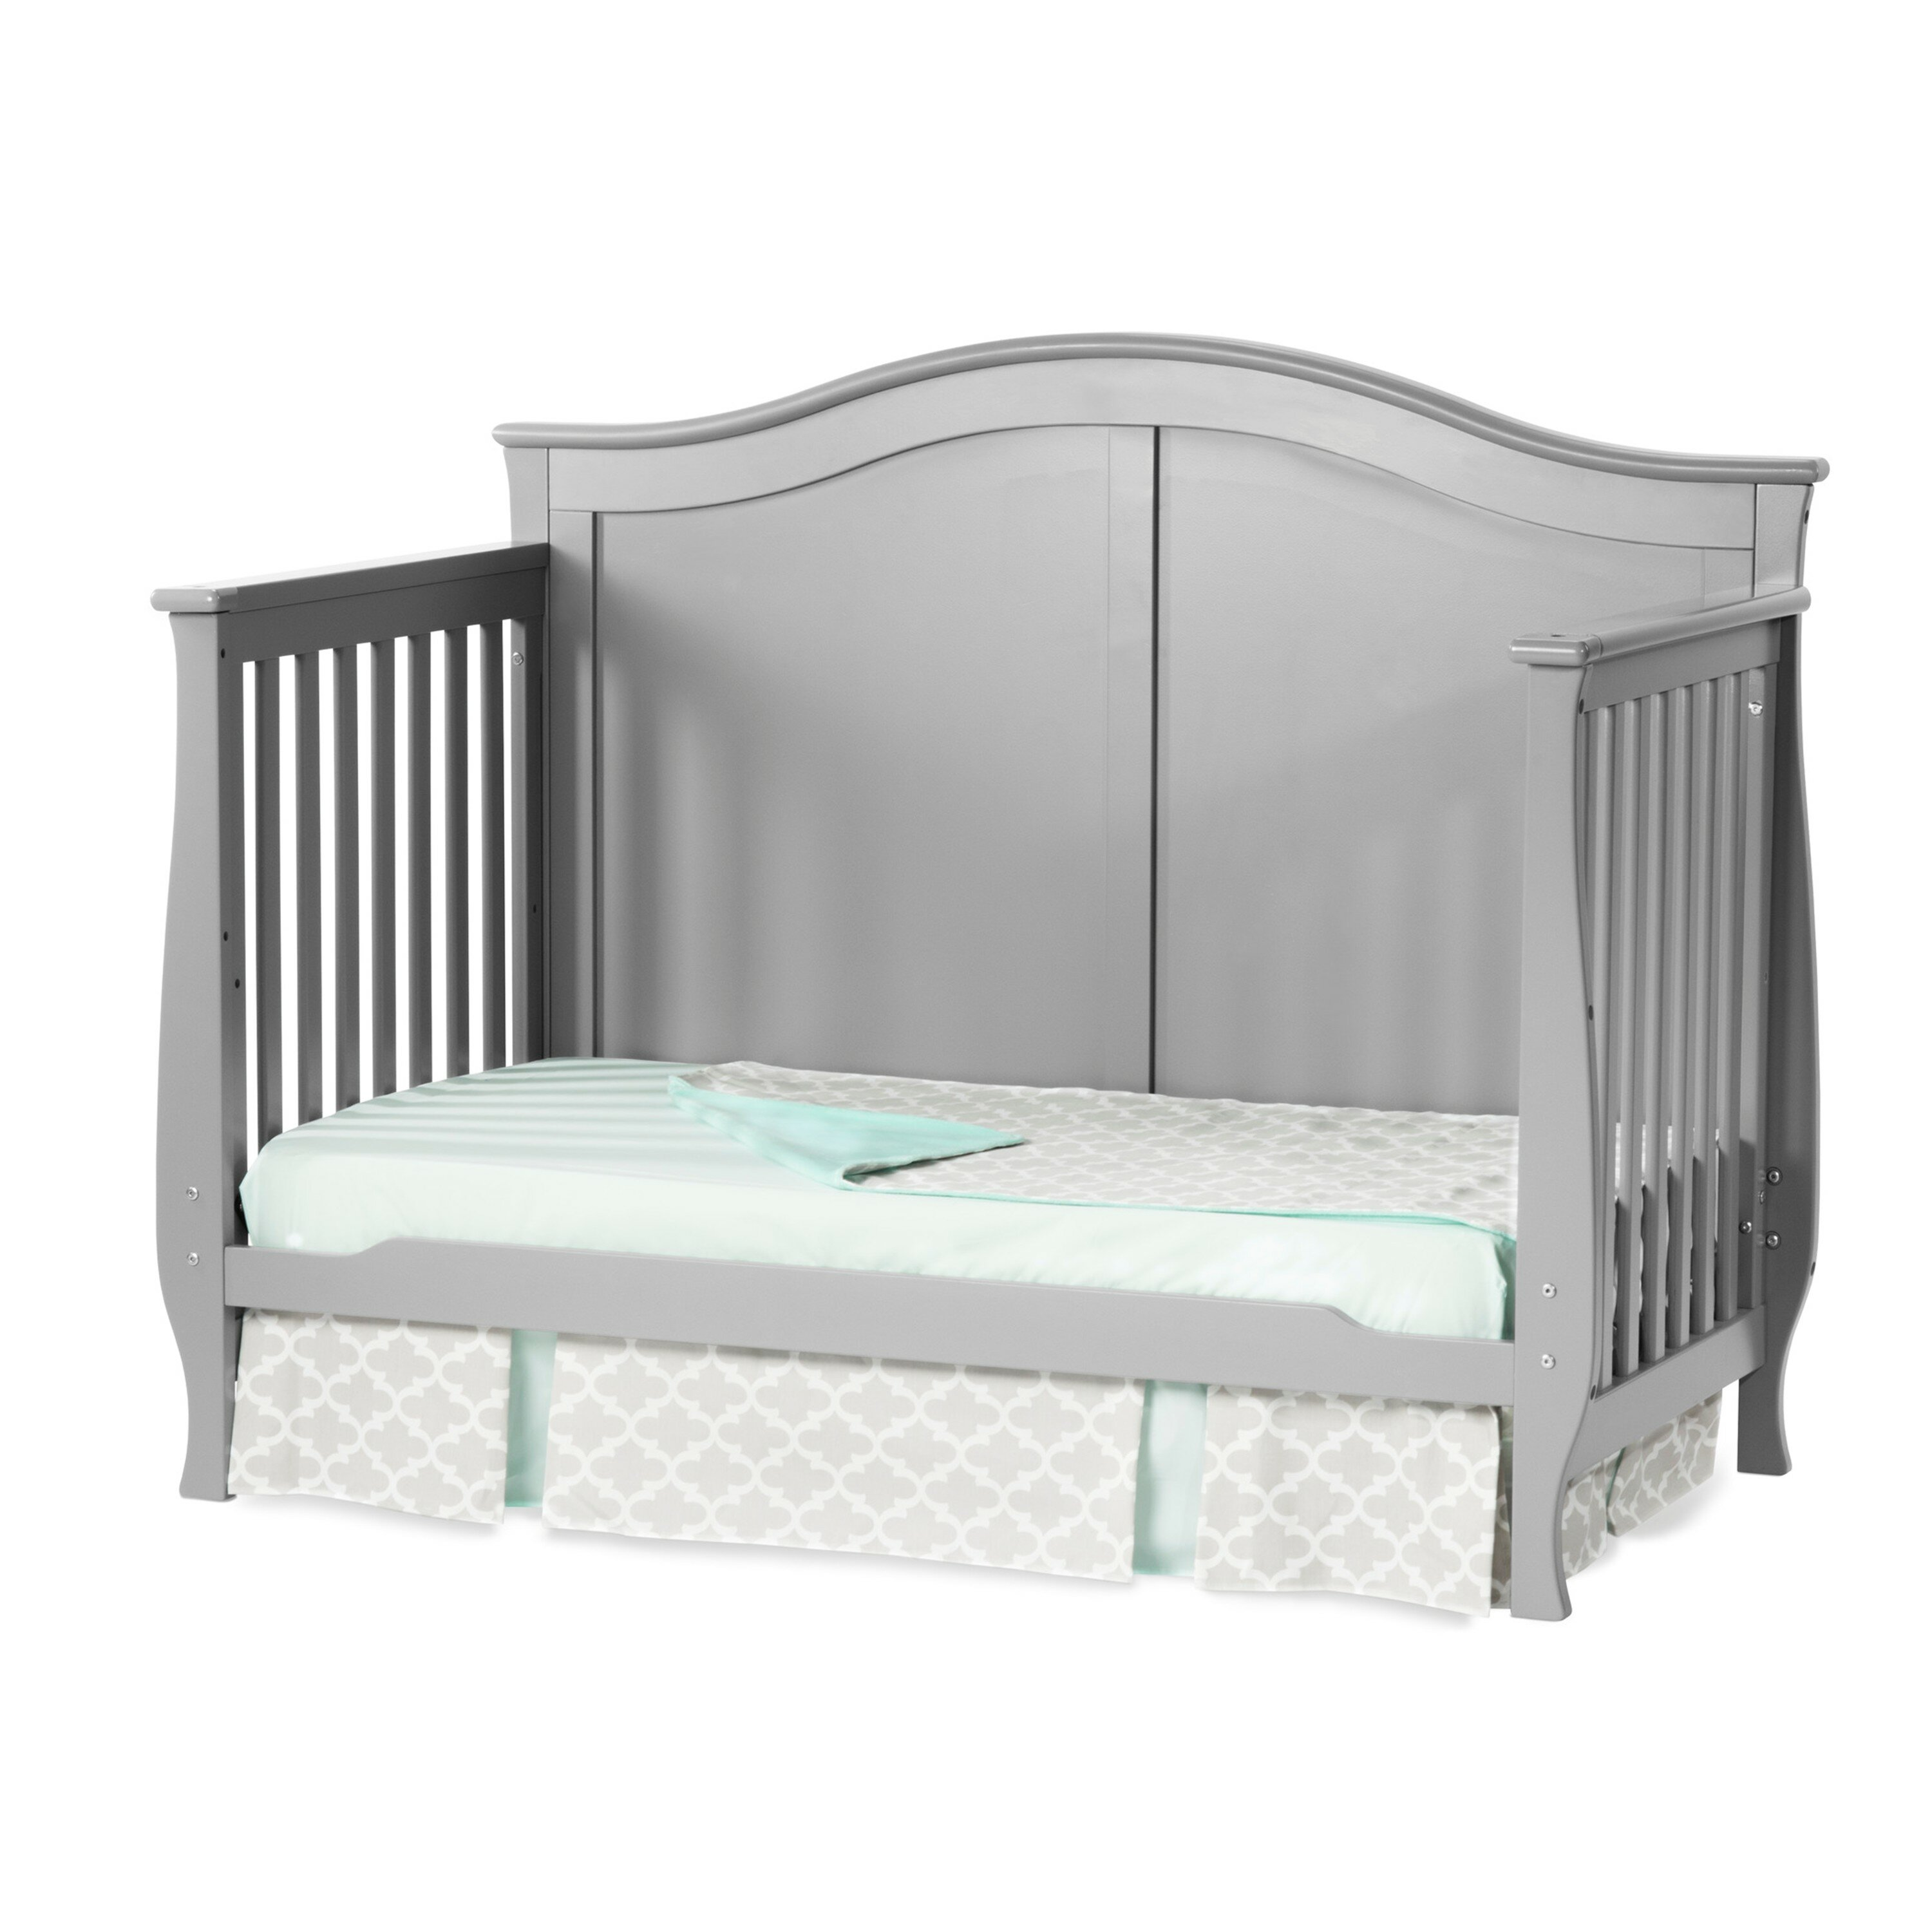 Used crib for sale edmonton - Child Craft Camden 4 In 1 Convertible Crib